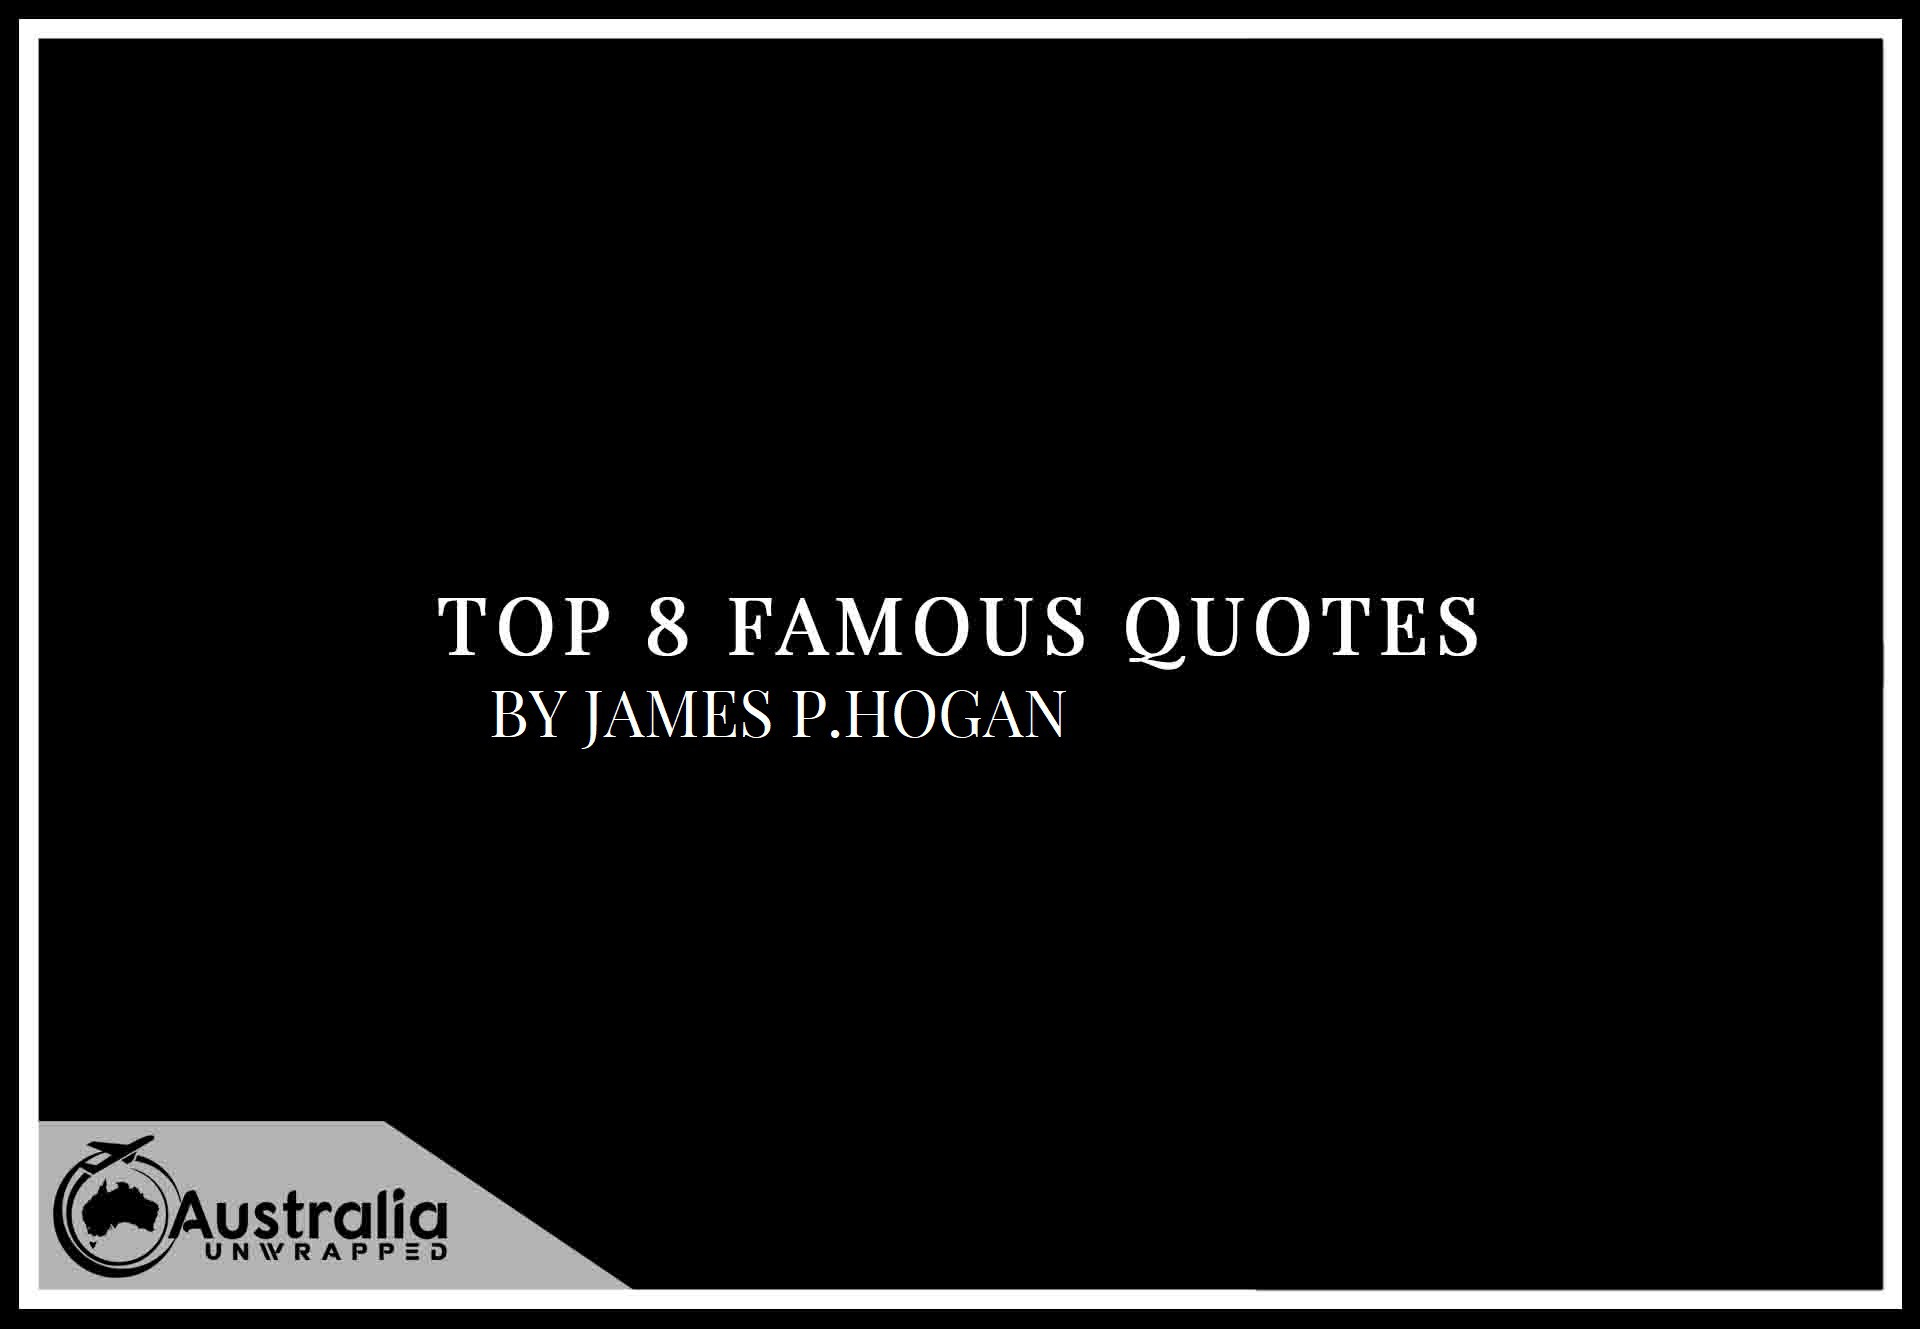 Top 8 Famous Quotes by Author James P. Hogan